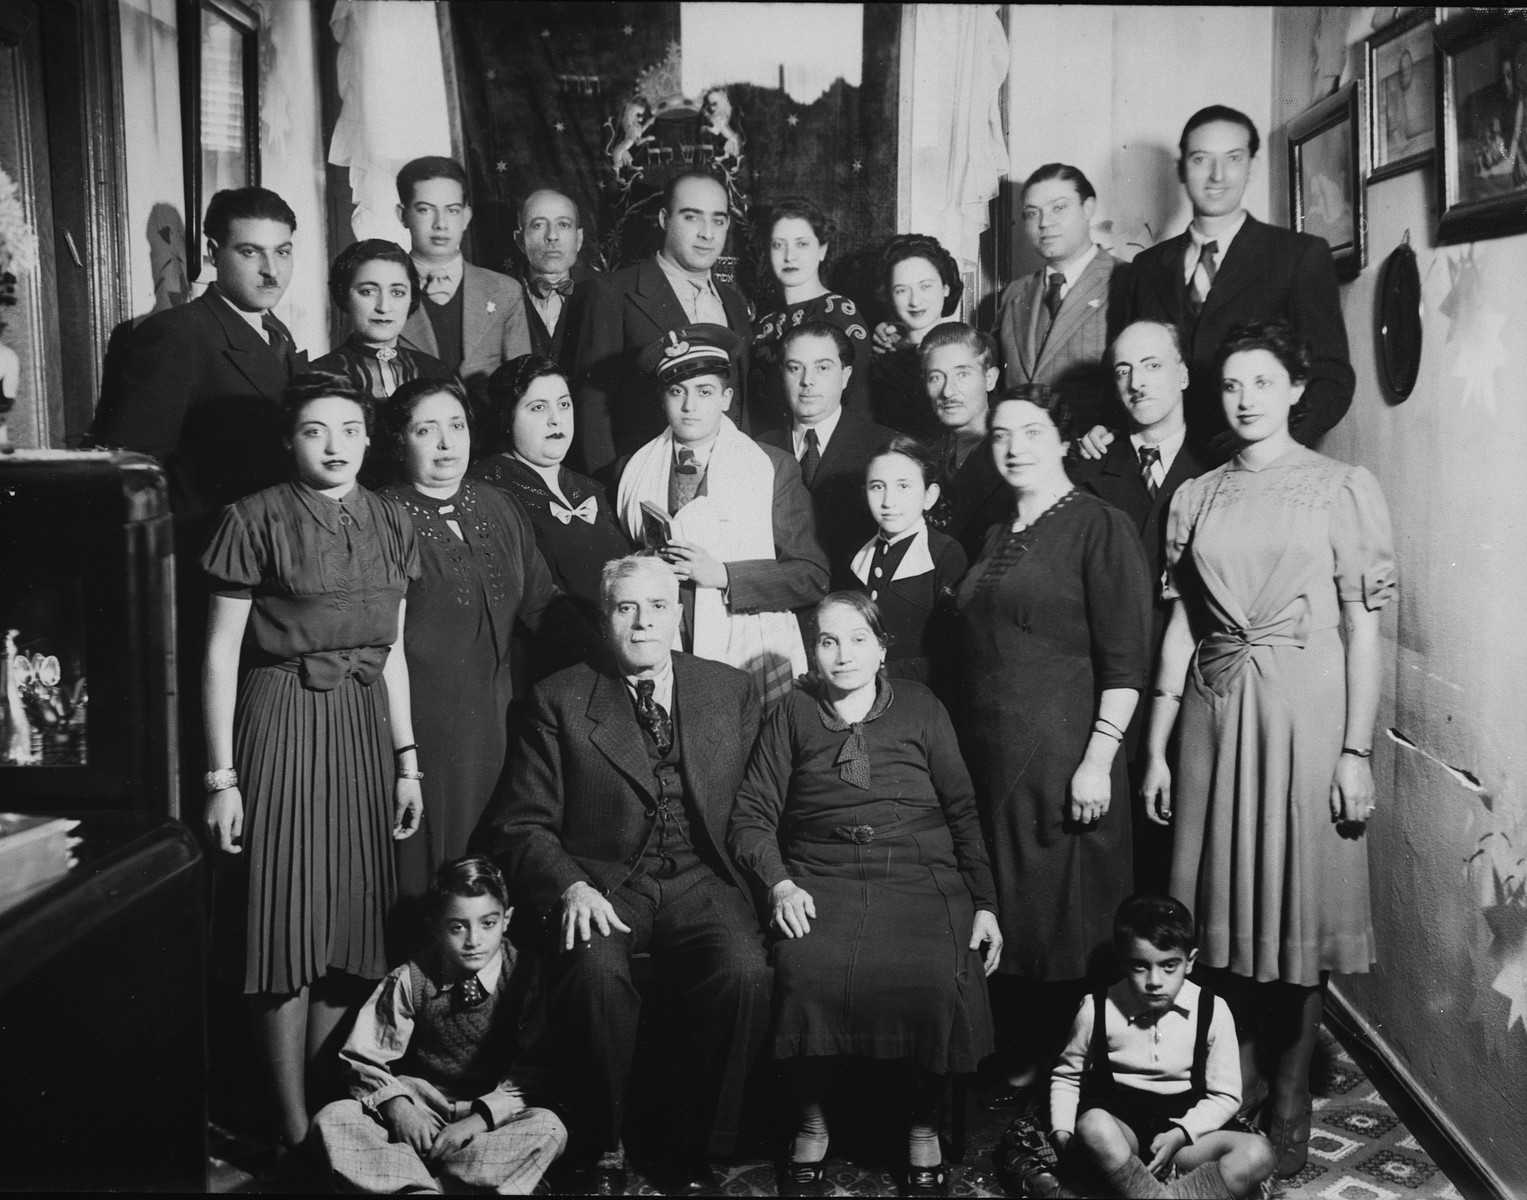 A Greek Jewish family gathers for a group portrait surrounding a bar mitzvah boy clad in a tallit.  Pictured are the Menashe family.  Of all those pictured, only three survived: Sylvia Amar (second row, far right), Nissim Menashe (top row, far right) and Oro Menashe (top row, center).